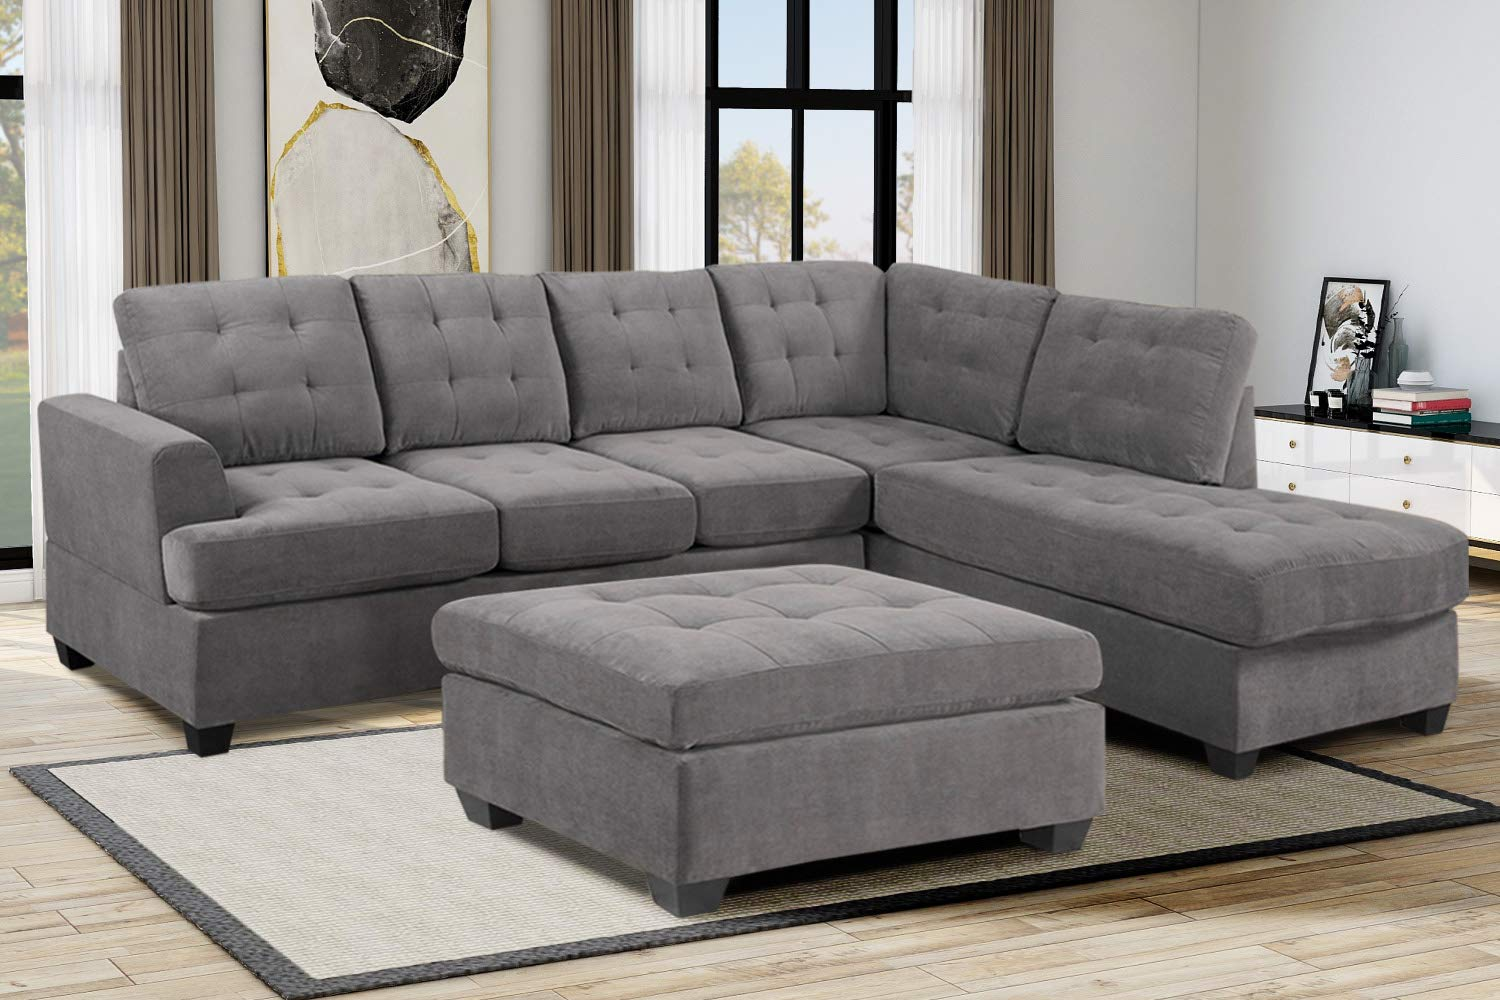 Amazon.com: 3 Piece Sectional Sofa Set,Corner Sofa ...